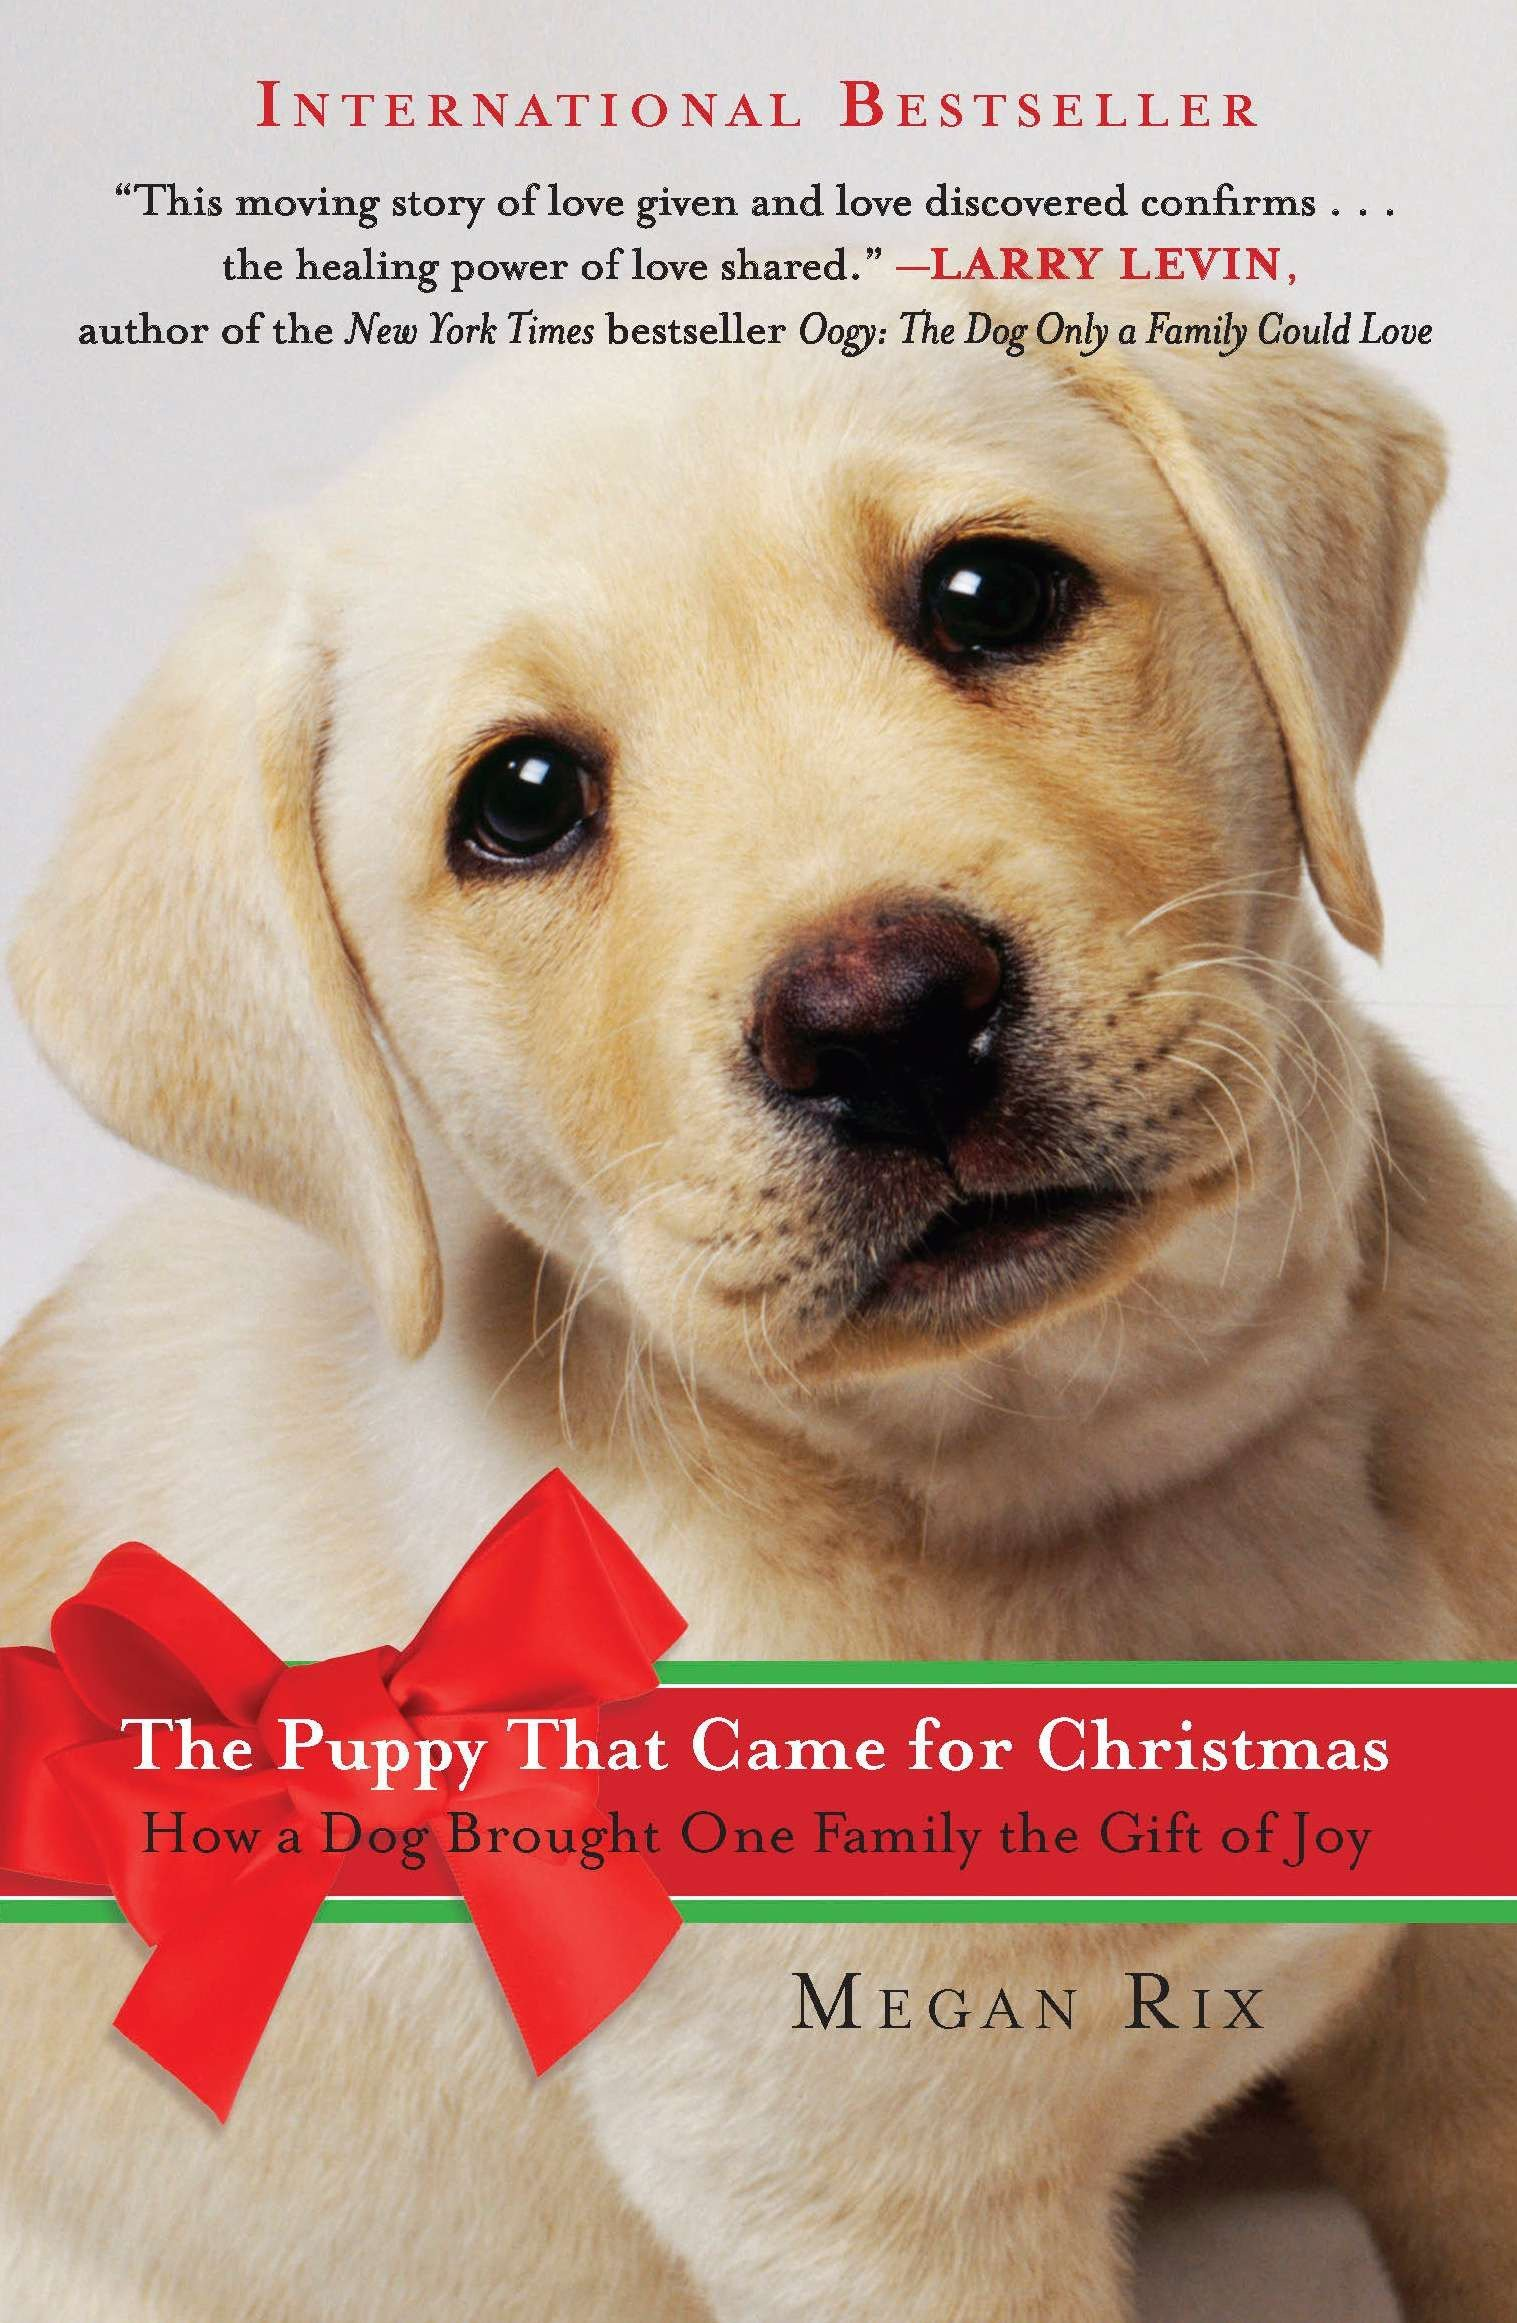 Puppies Ready For Christmas 2021 Buy The Puppy That Came For Christmas How A Dog Brought One Family The Gift Of Joy Book Online At Low Prices In India The Puppy That Came For Christmas How